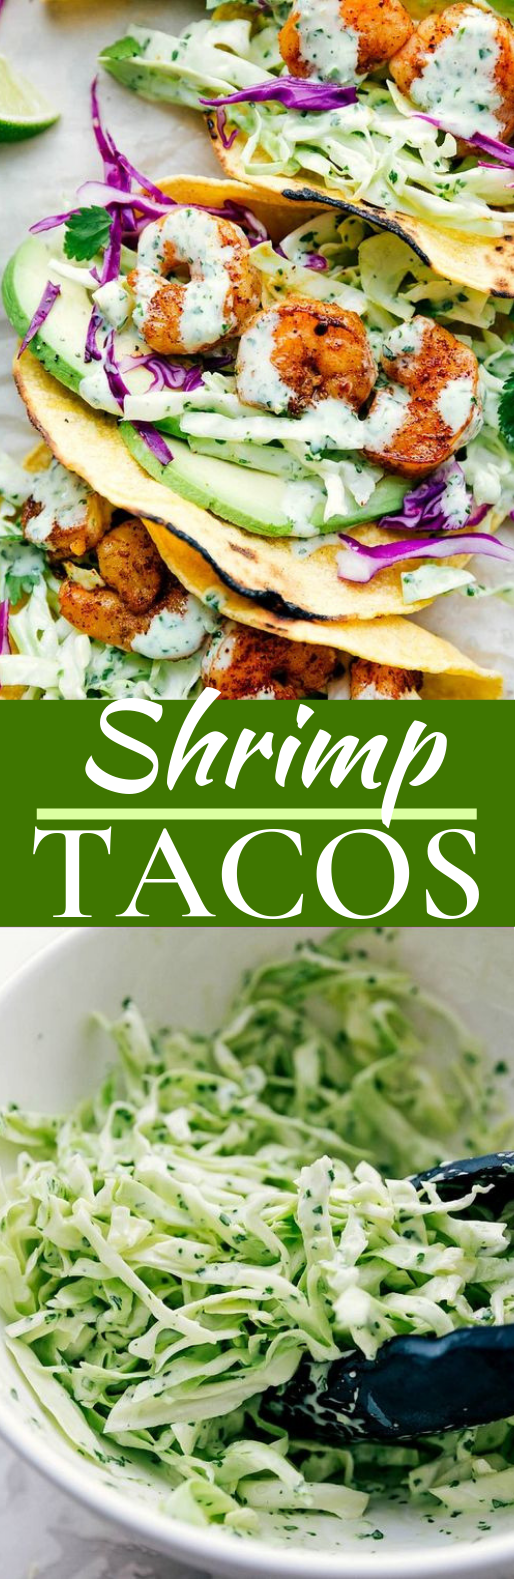 SHRIMP TACOS #healthy #lunch